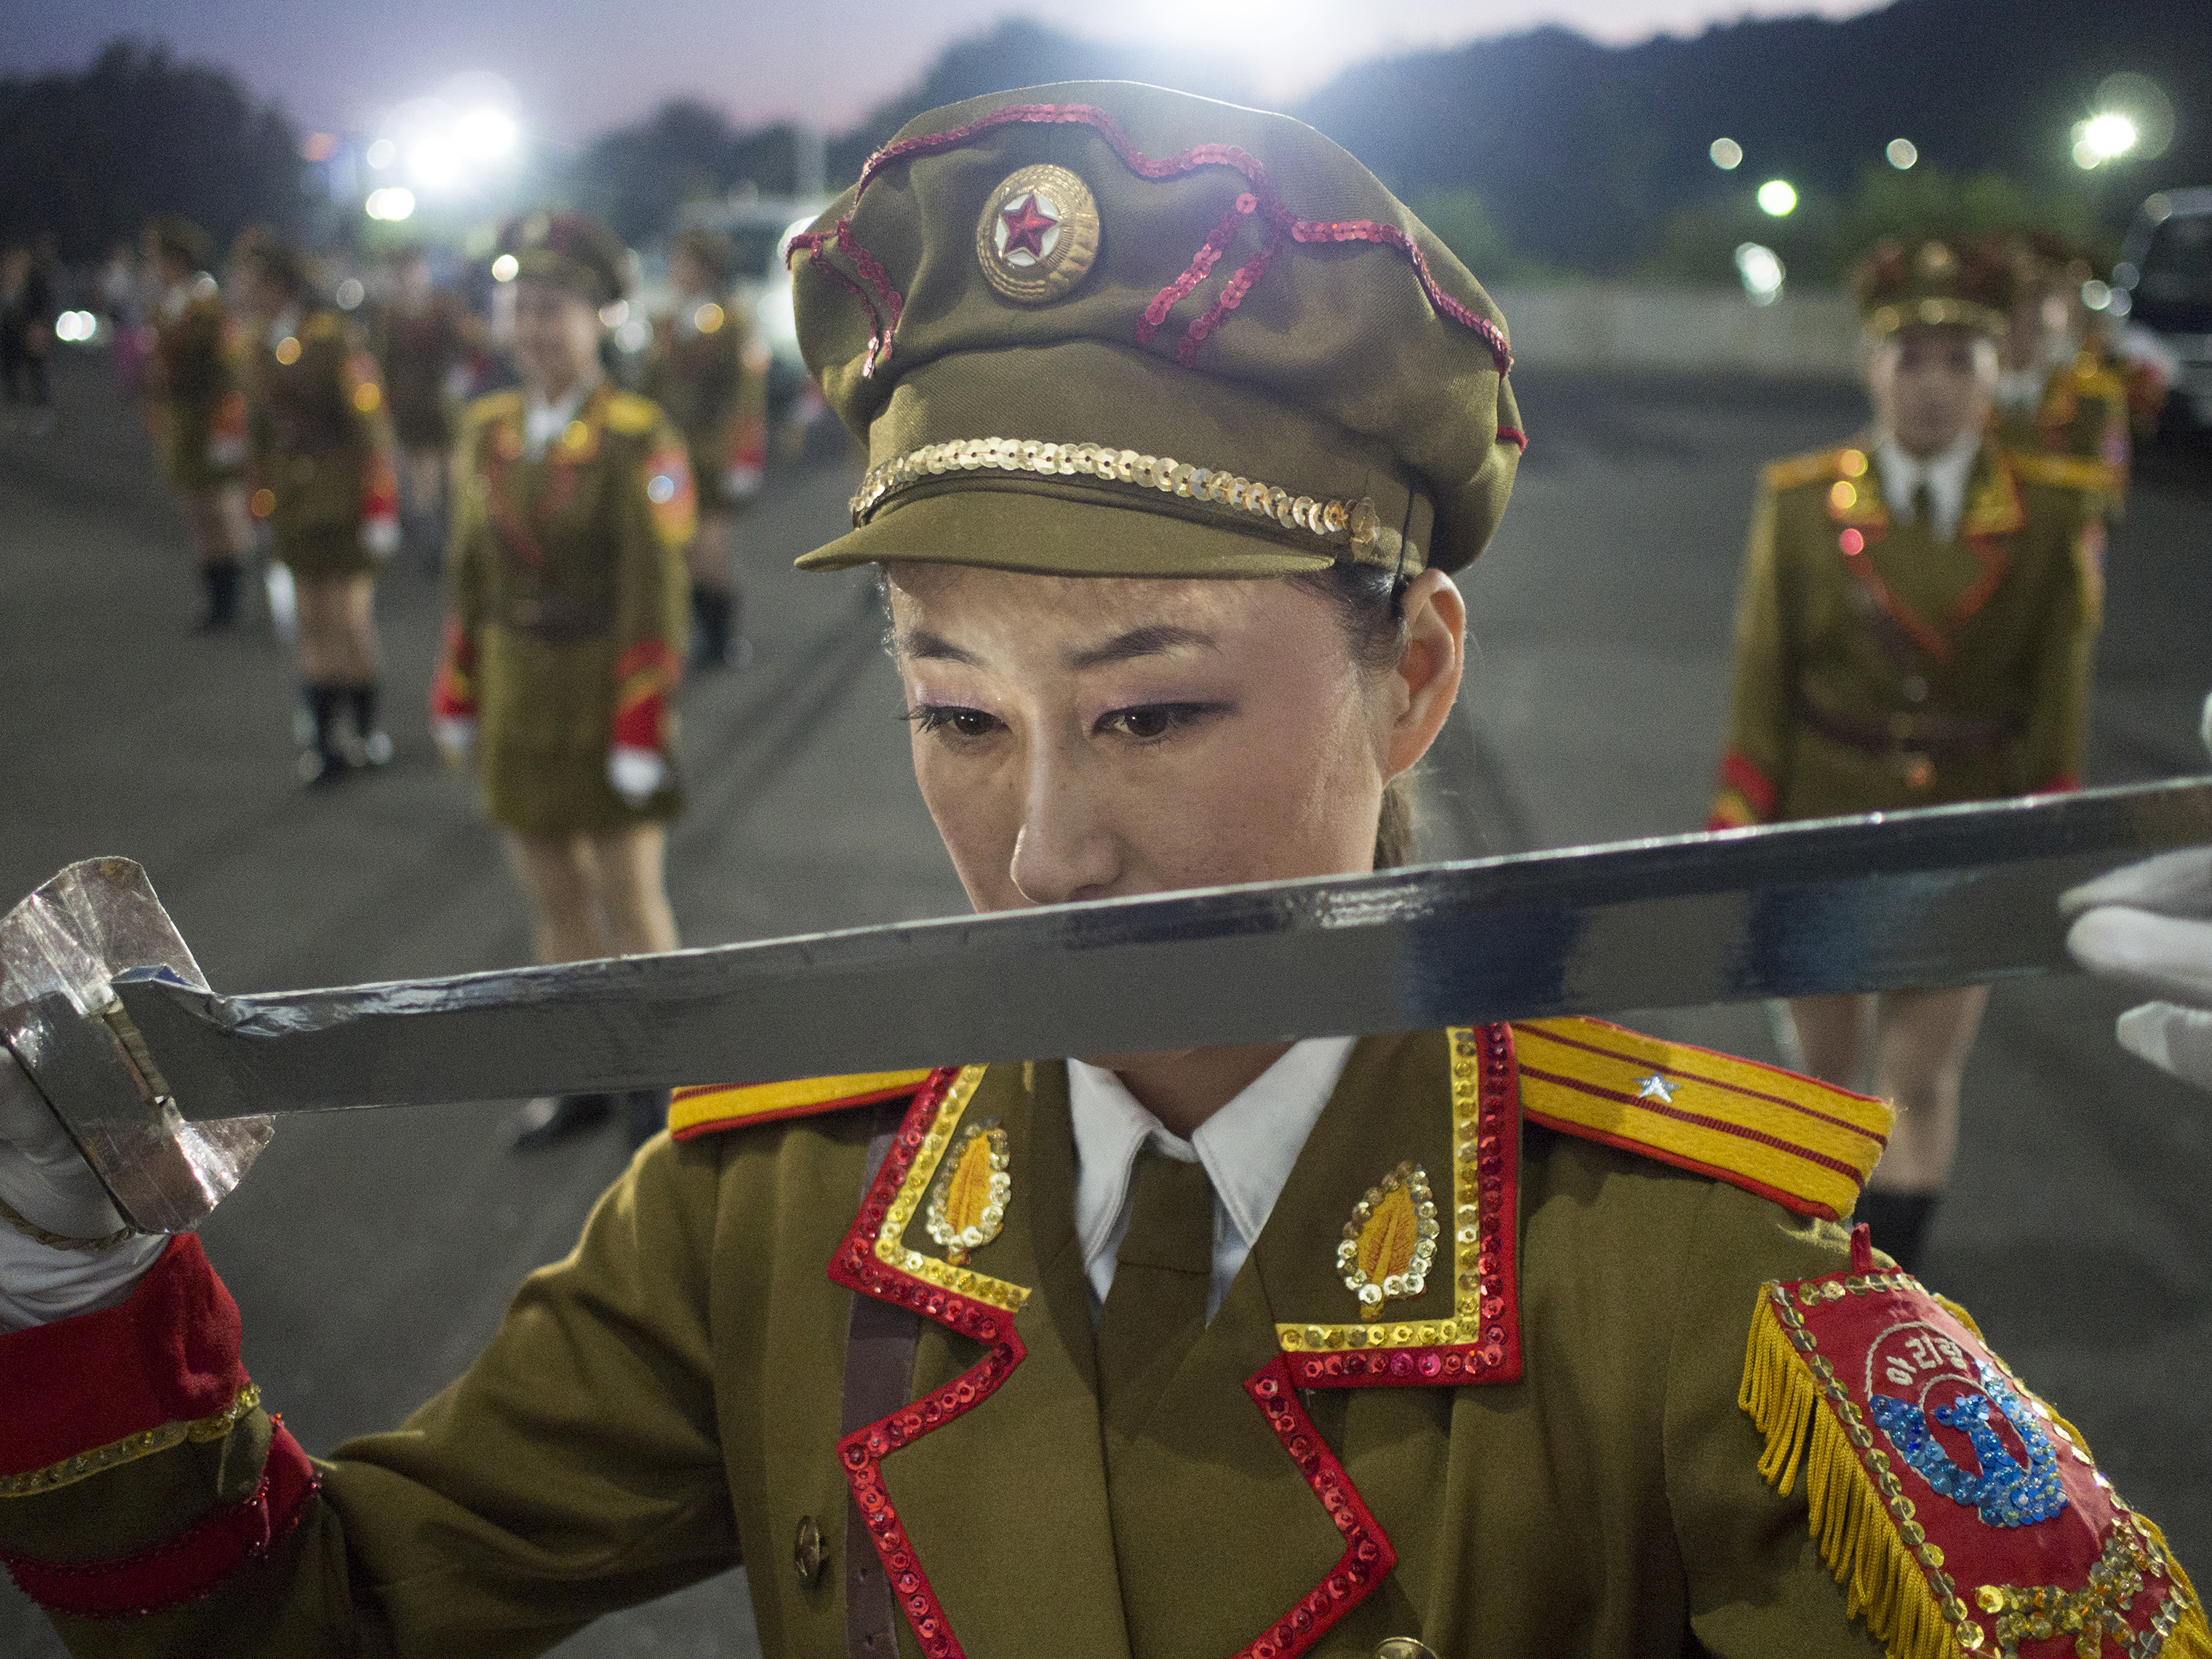 Ri Hyang Yon, 21, a dancer in the Arirang Games, during a practice session in the car park of May Day Stadium in Pyongyang.